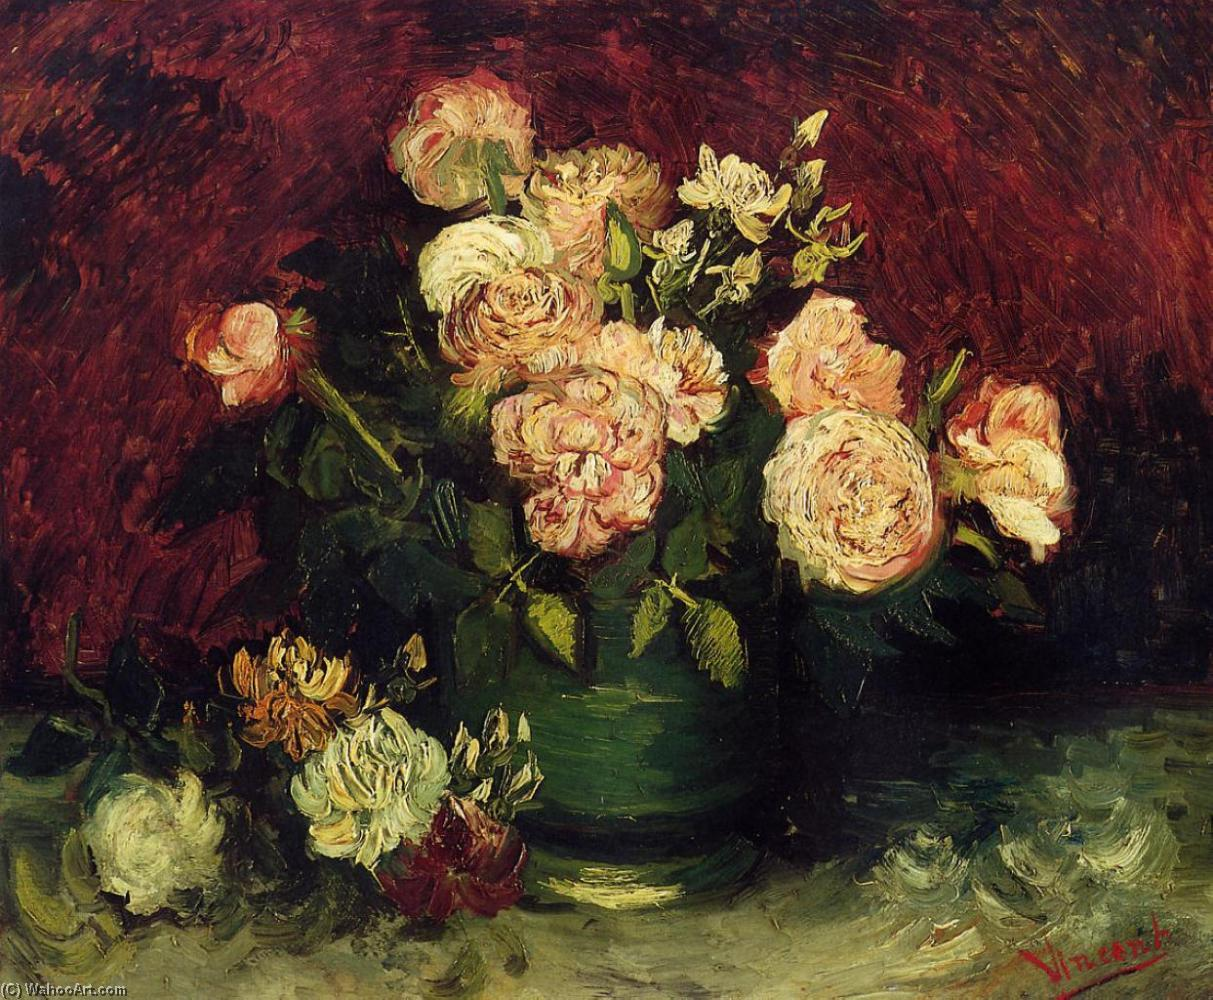 Bowl with Peonies and Roses, Oil On Canvas by Vincent Van Gogh (1853-1890, Netherlands)